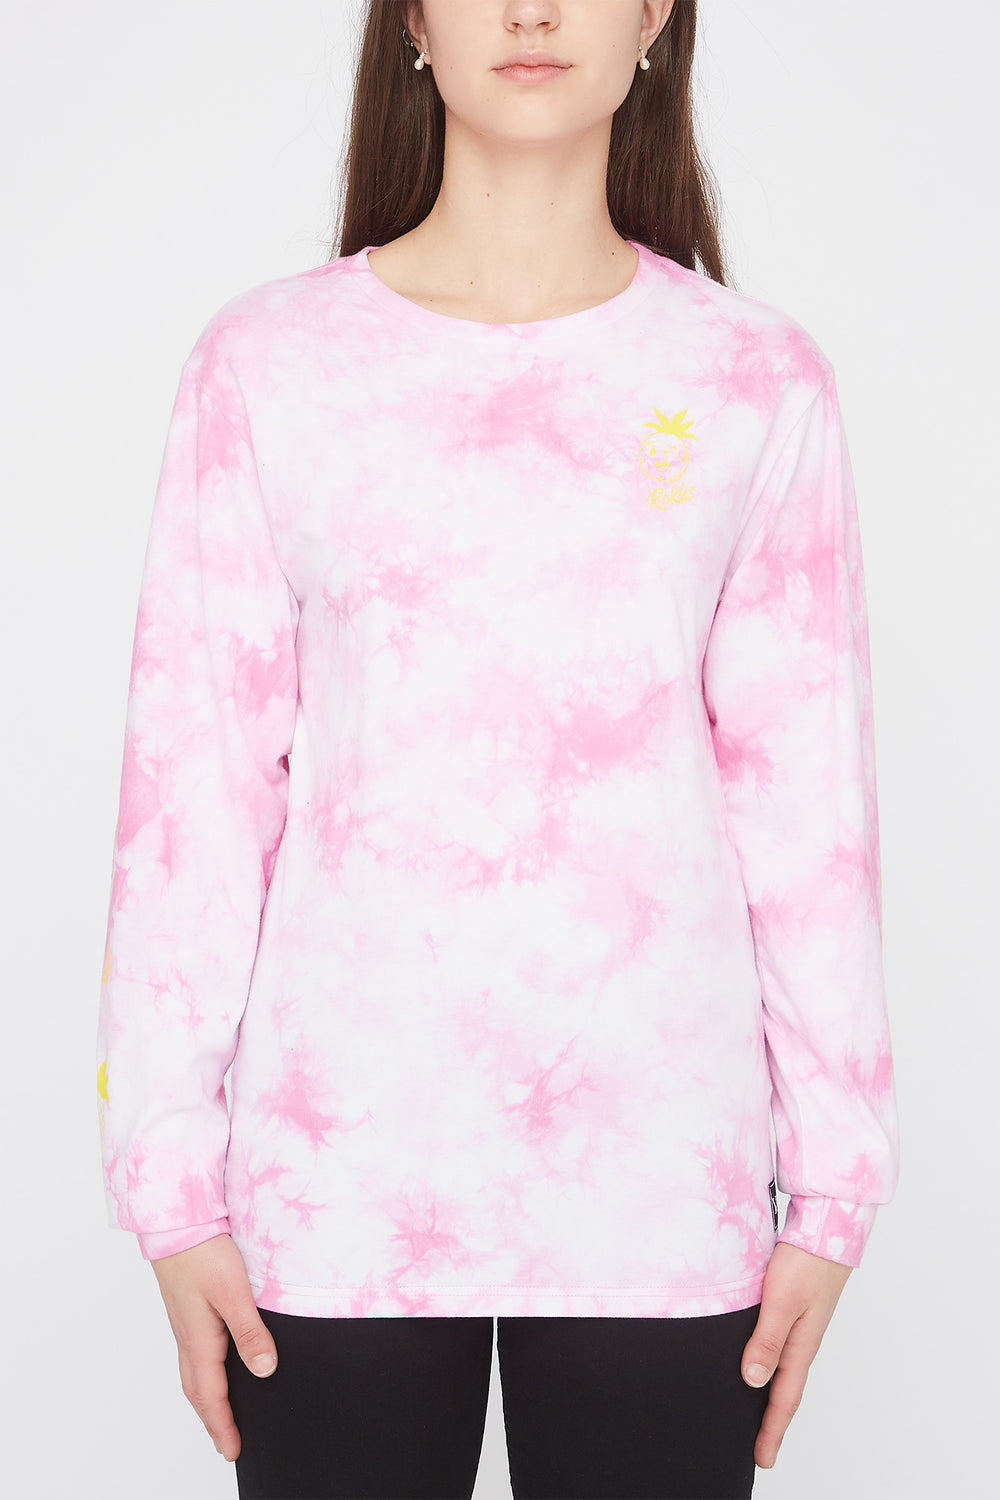 Young & Reckless Womens Fruit Tie-Dye Long Sleeve Shirt Pink